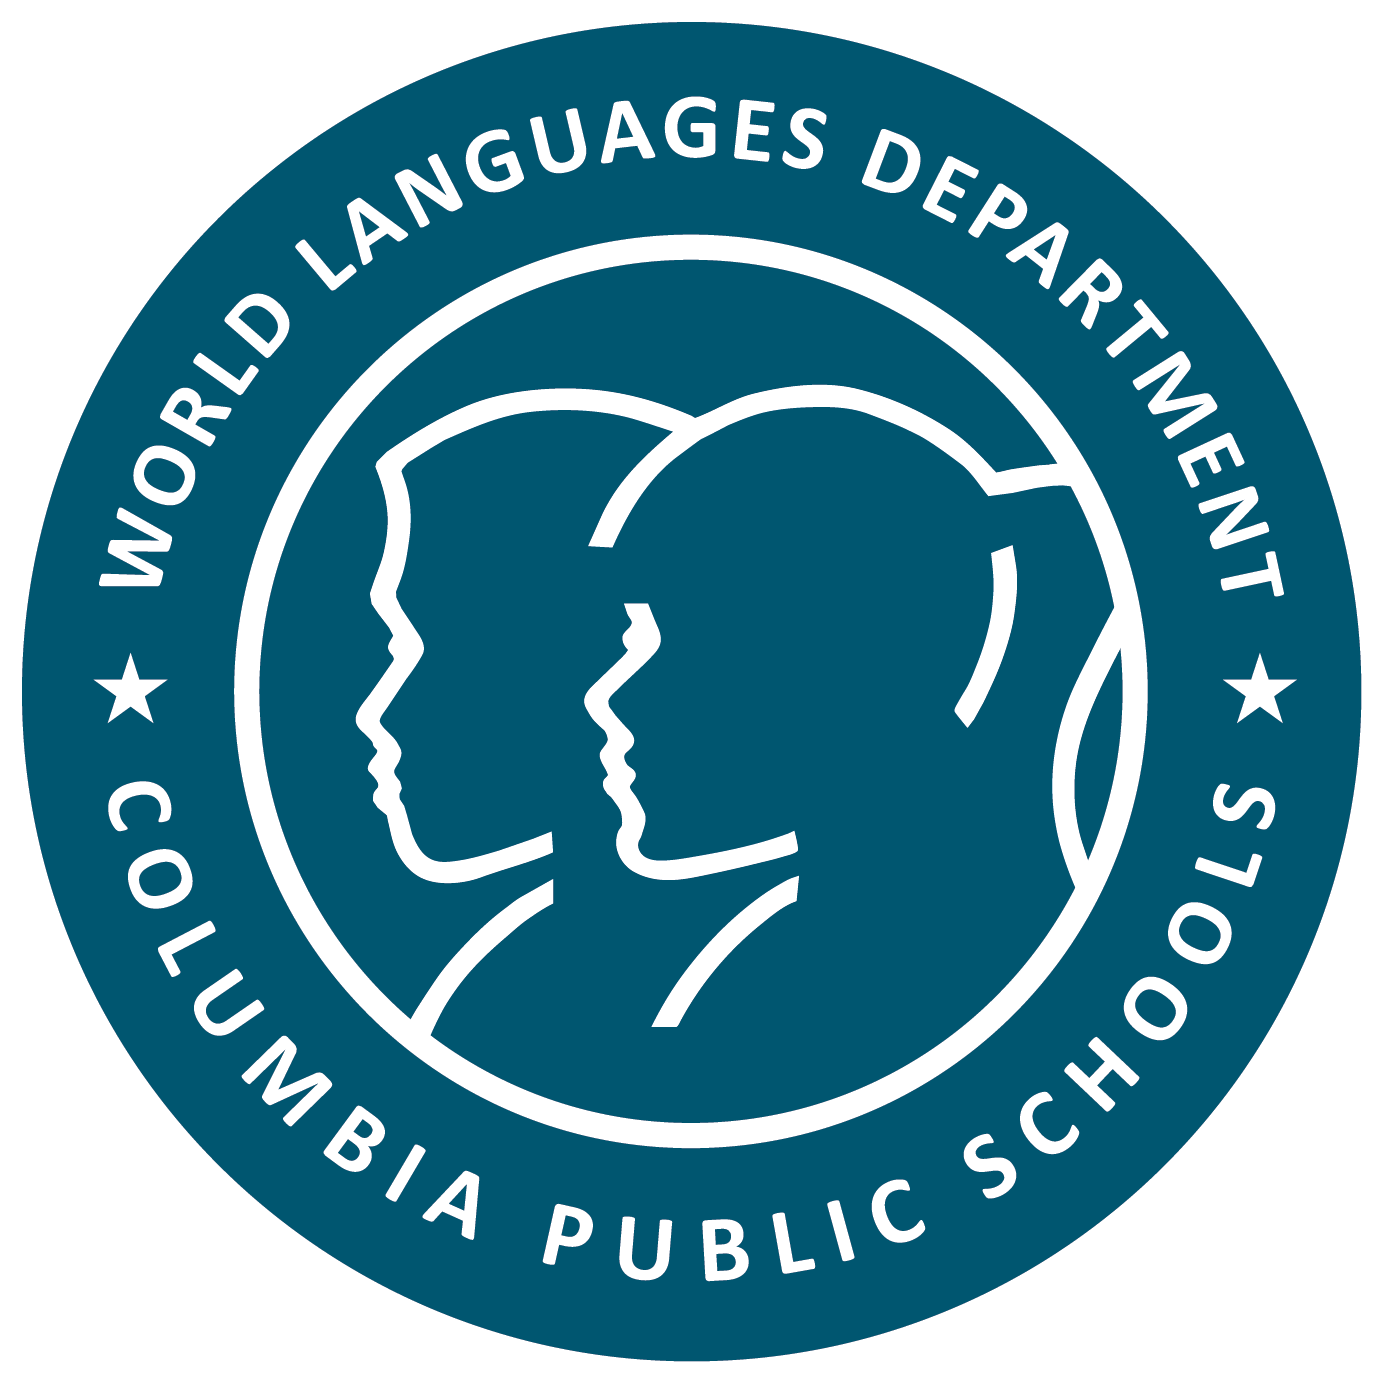 WorldLanguagesDepartmentLogo""